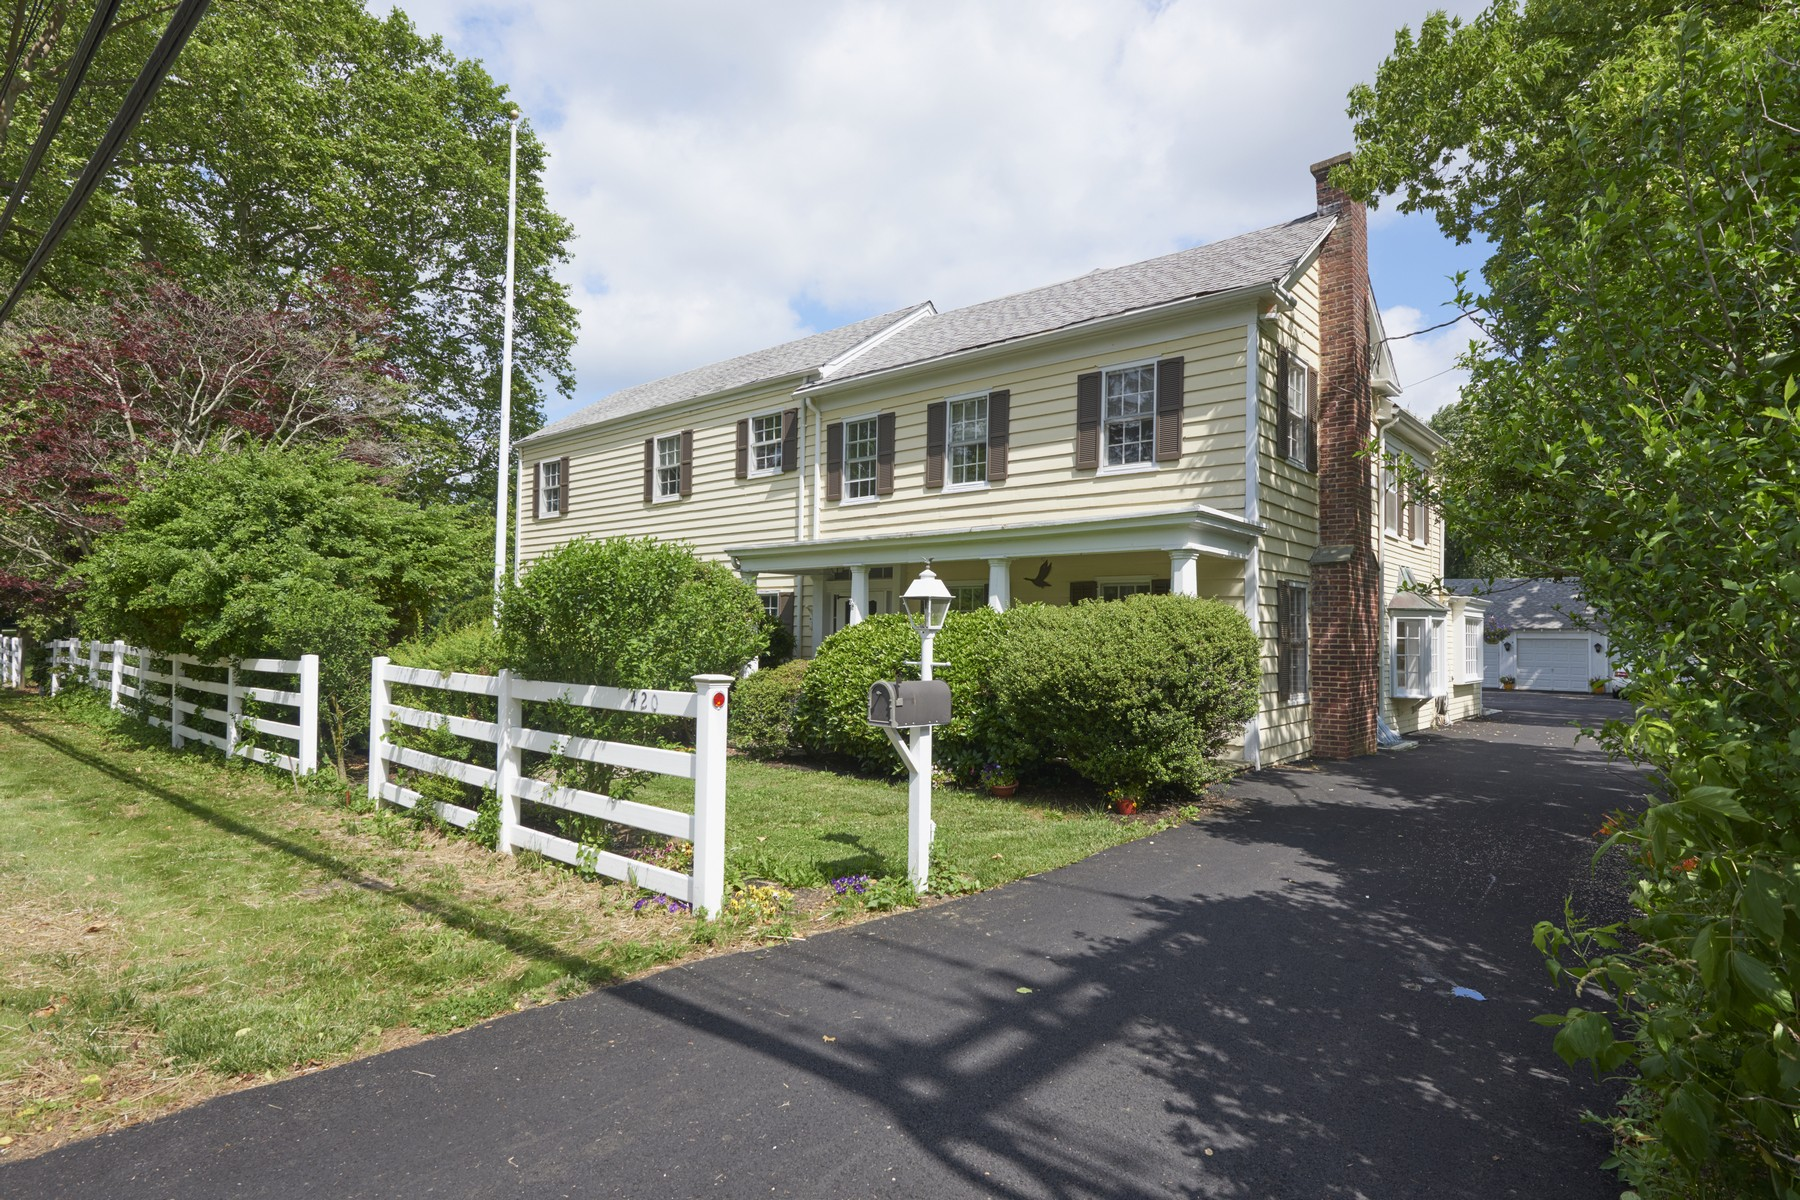 Single Family Home for Sale at 420 Sycamore Ave. Shrewsbury, New Jersey, 07702 United States